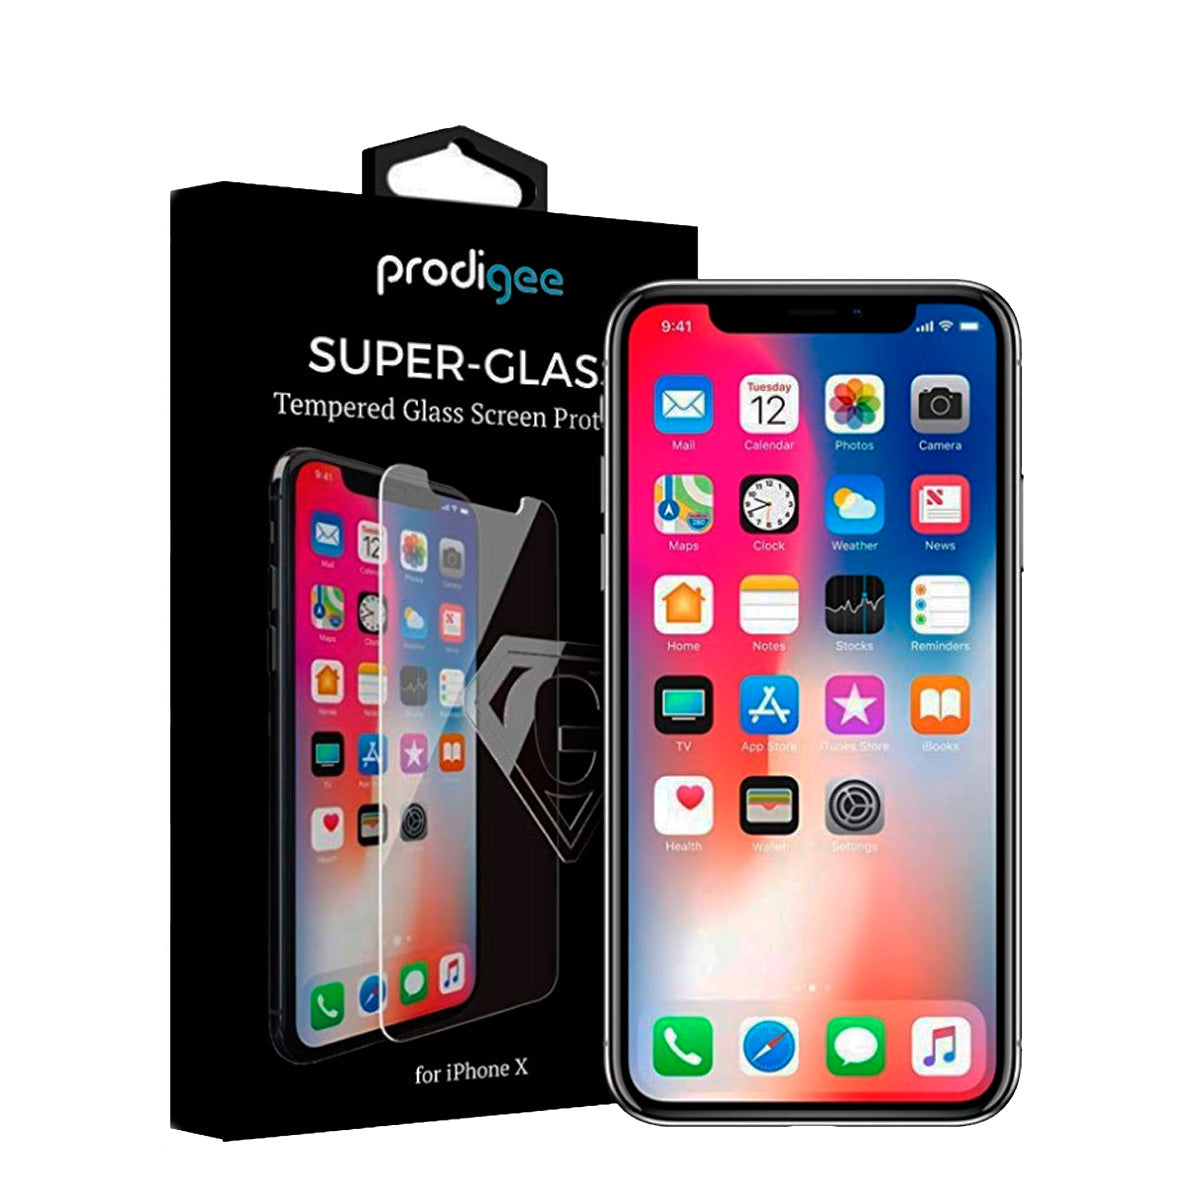 Protetor de Ecrã para Smartphone Prodigee Super Glass Apple iPhone X/ Xs/ 11 Pro Transparente